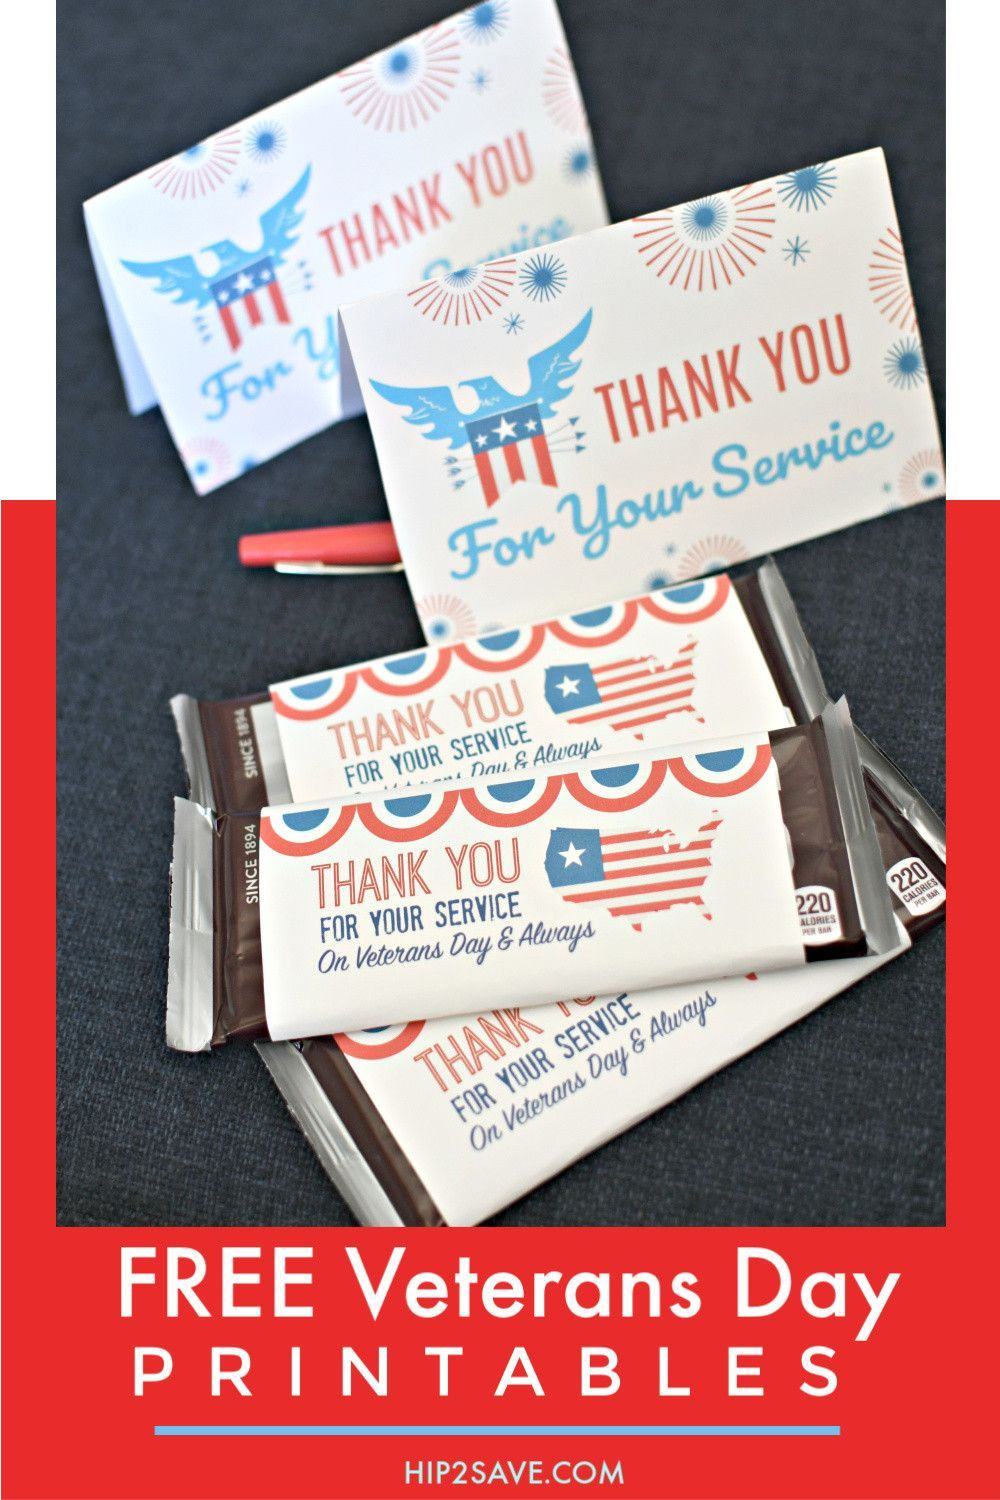 Free Veterans Day Thank You Printable Cards and Candy Bar Wrappers #veteransdaythankyou Free Veterans Day Thank You For Your Service  Printable Cards and Candy Bar Wrappers #veteransdaythankyou